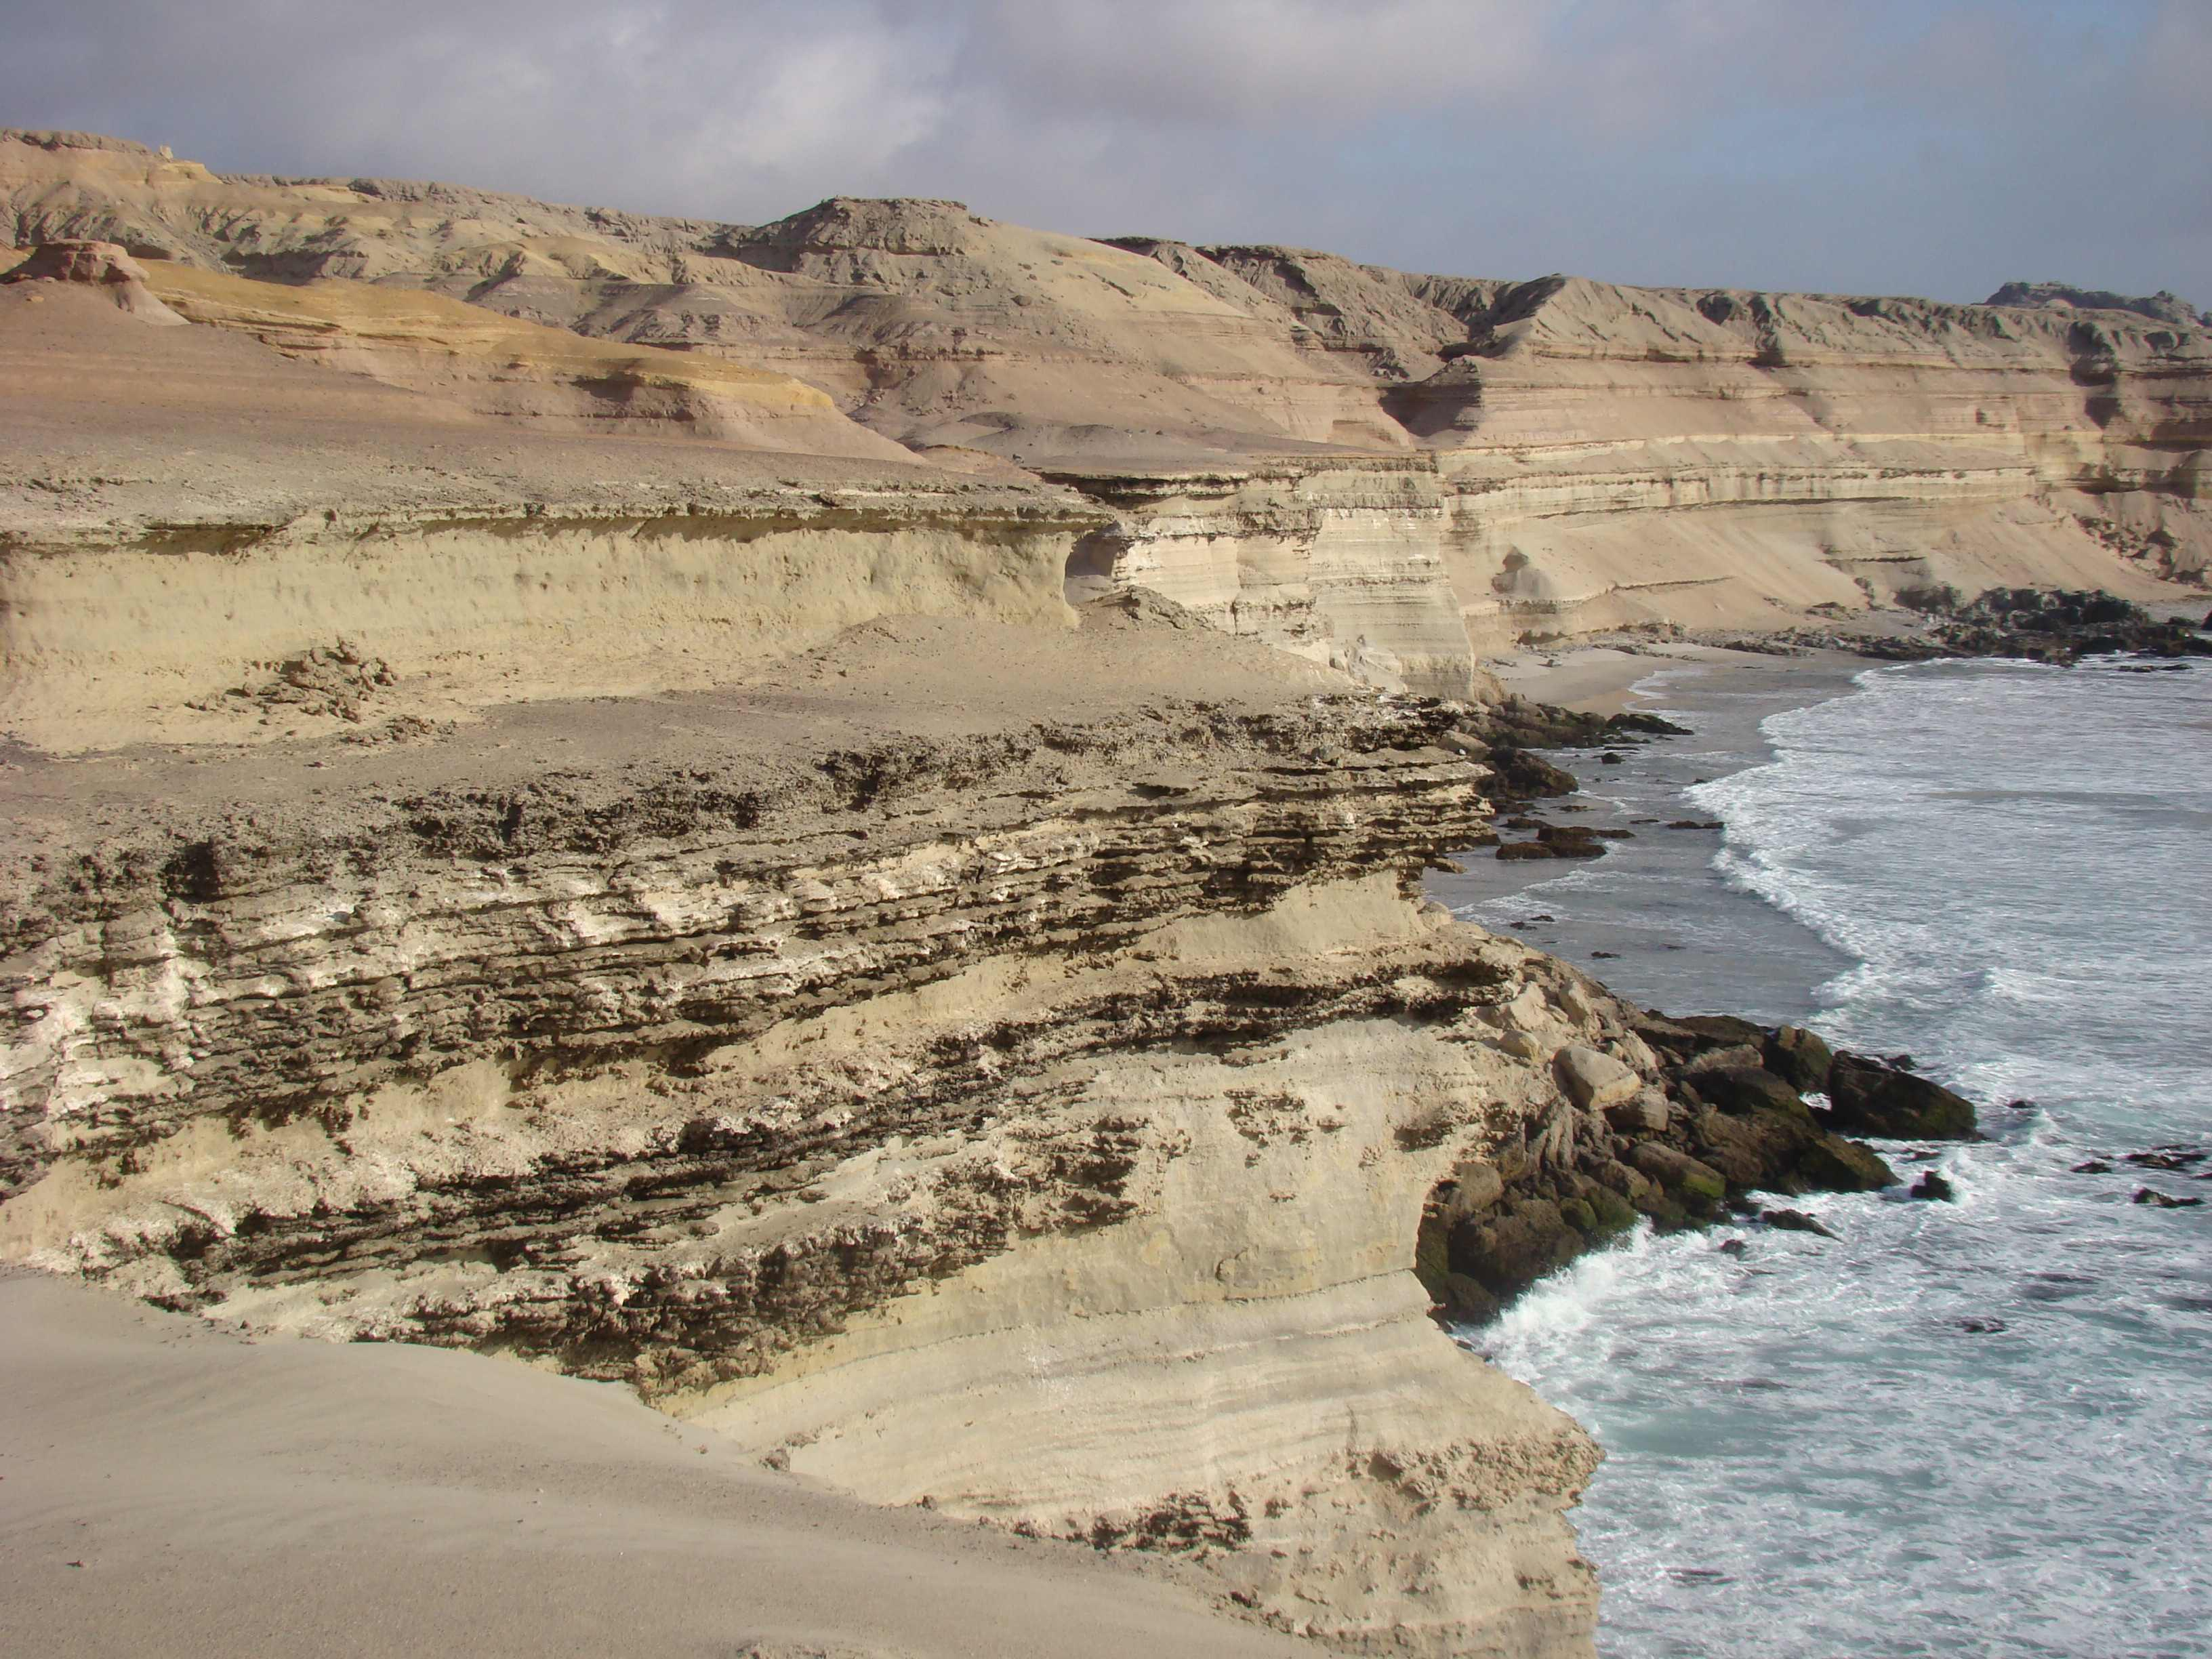 A photo of an arid ocean cliff in Chile's Atacama Desert with the ocean below.<div class='credit'><strong>Credit:</strong> A photo of an arid ocean cliff in Chile's Atacama Desert with the ocean below.</div>